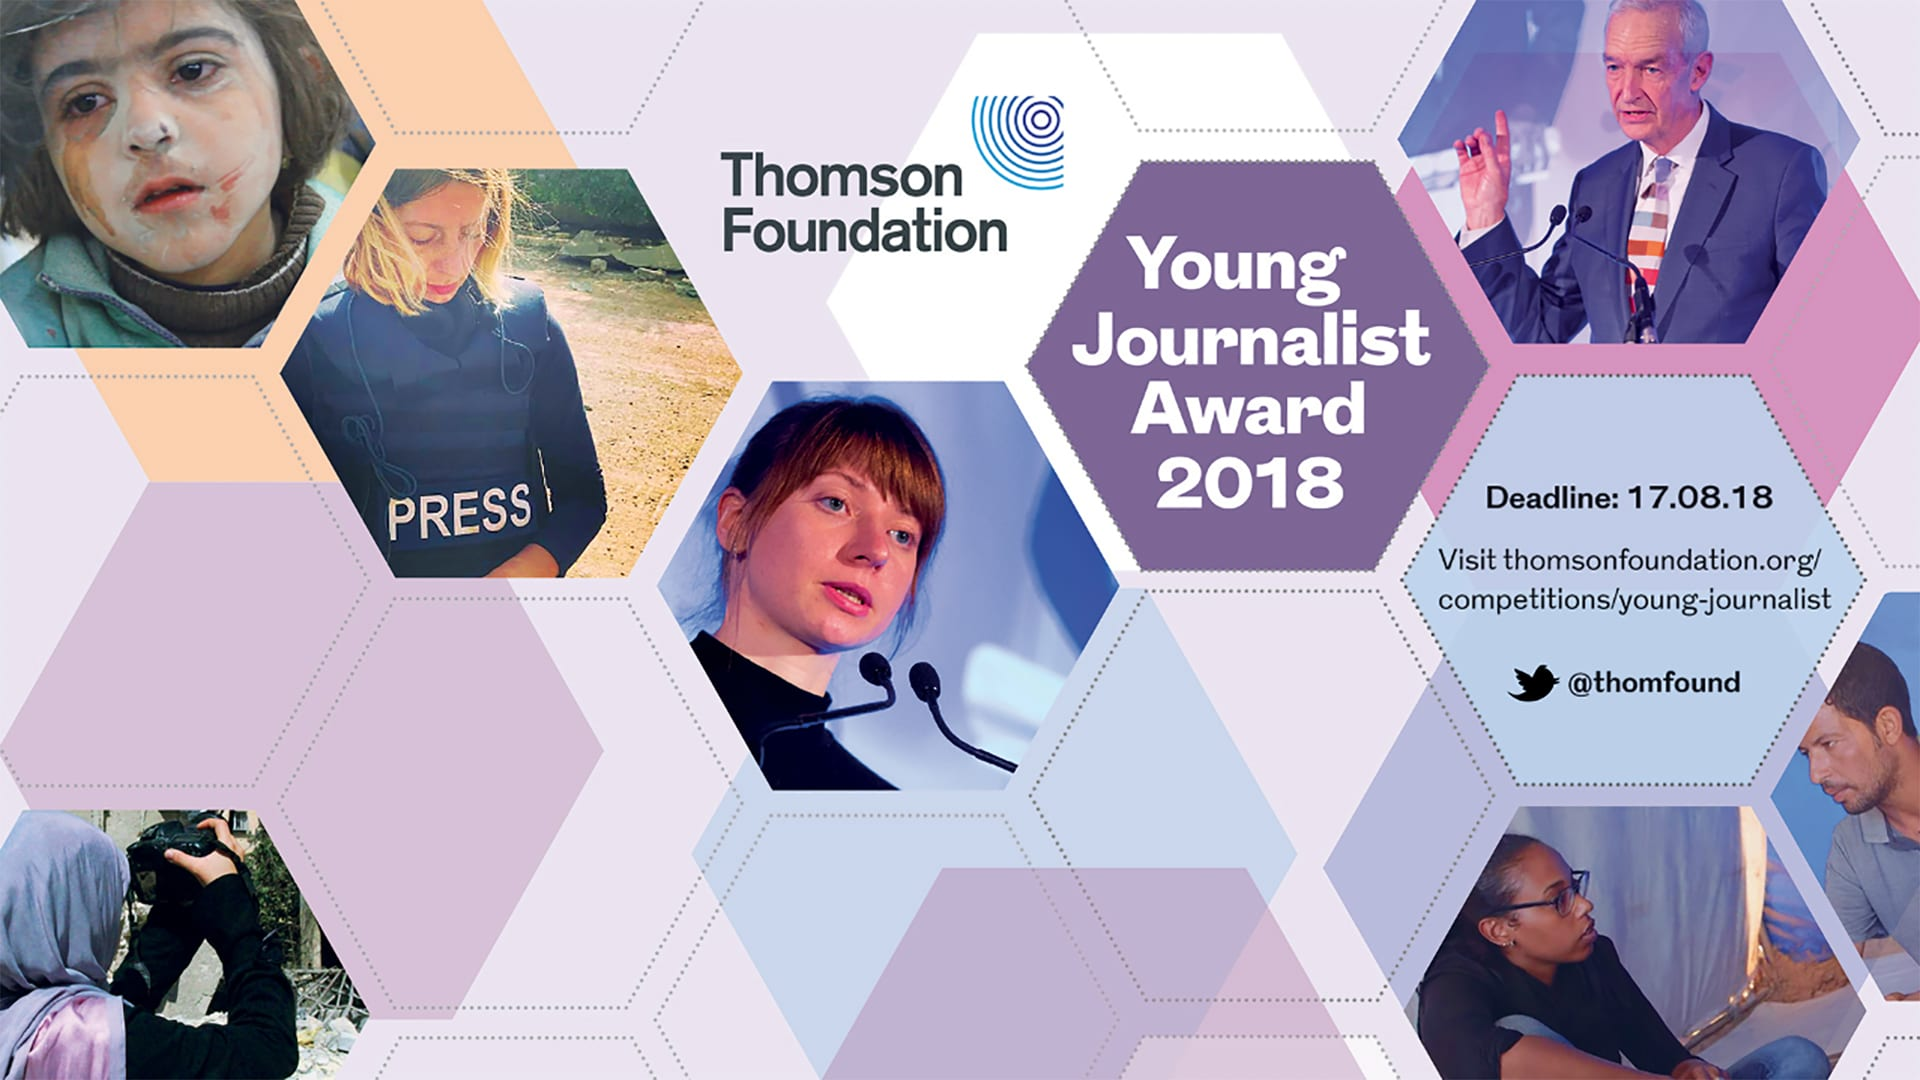 Thomson Foundation Young Journalist Award 2018 for Journalists worldwide (Fully Funded to London)